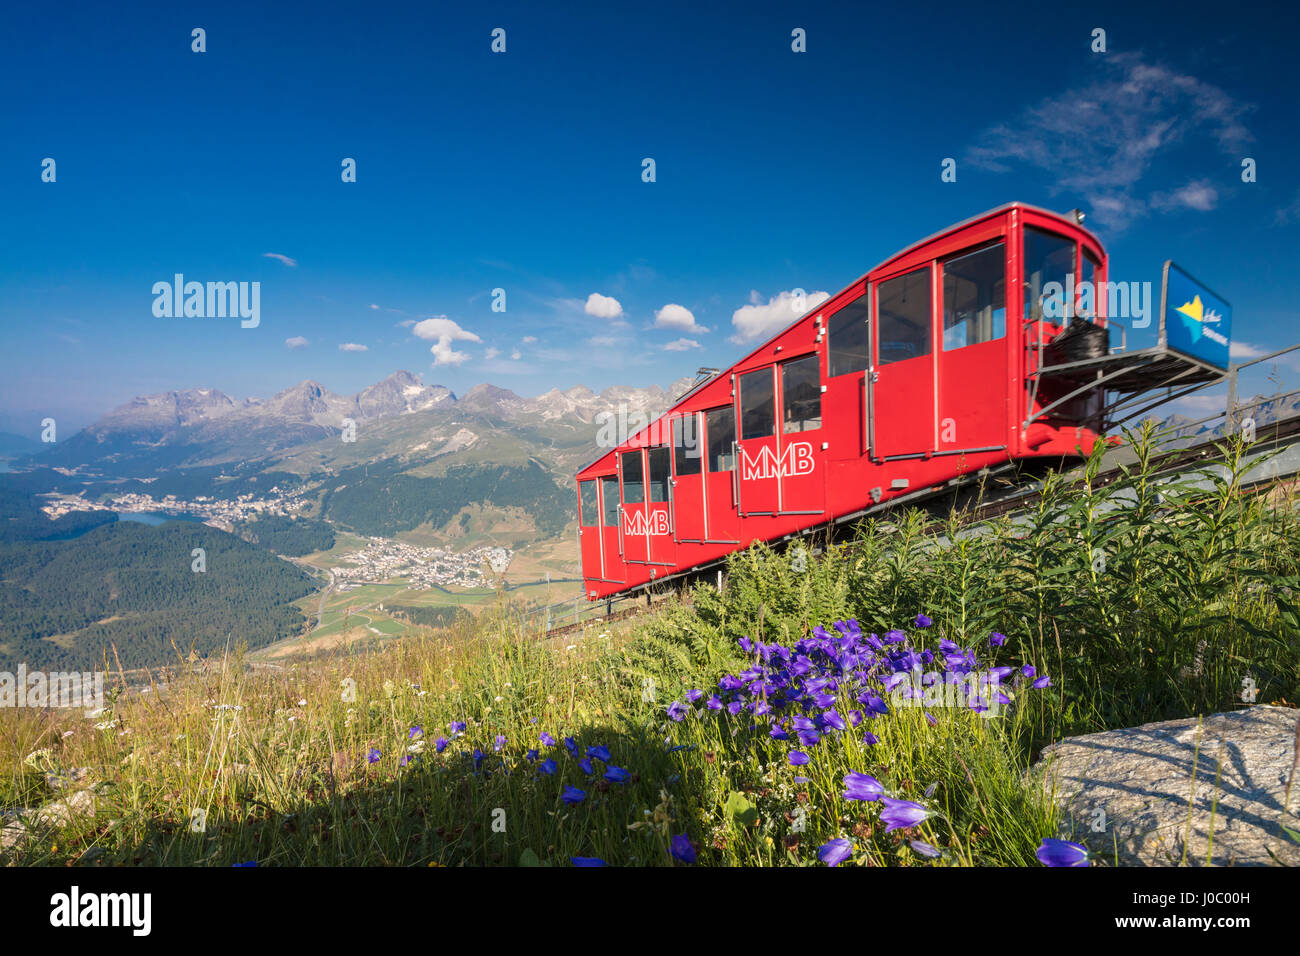 The funicular railway runs across the alpine meadows, Muottas Muragl, Samedan, Canton of Graubunden, Engadine, Switzerland - Stock Image